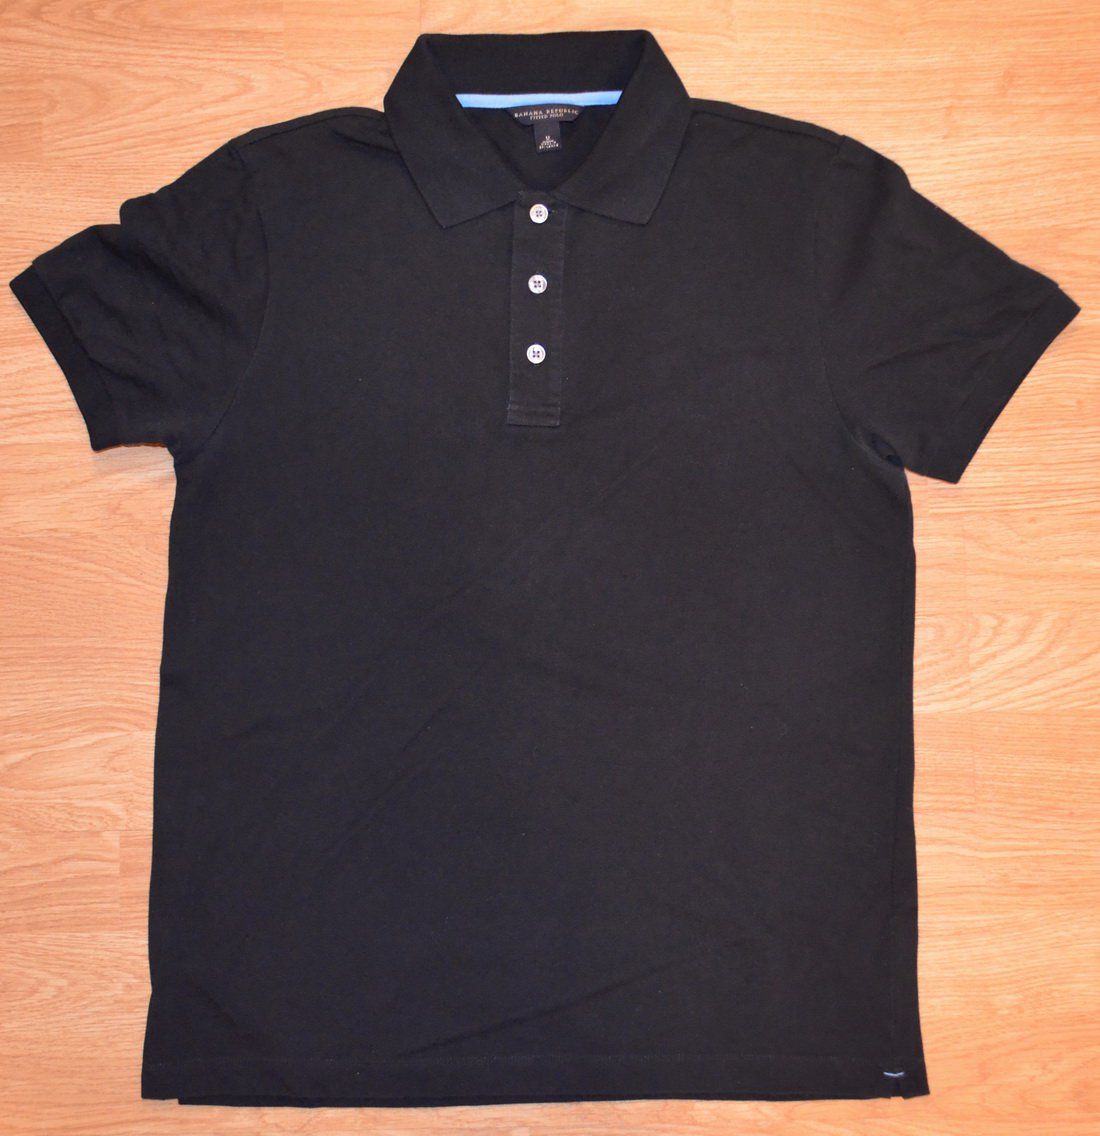 P002 Mens Polo shirt BANANA REPUBLIC Size M